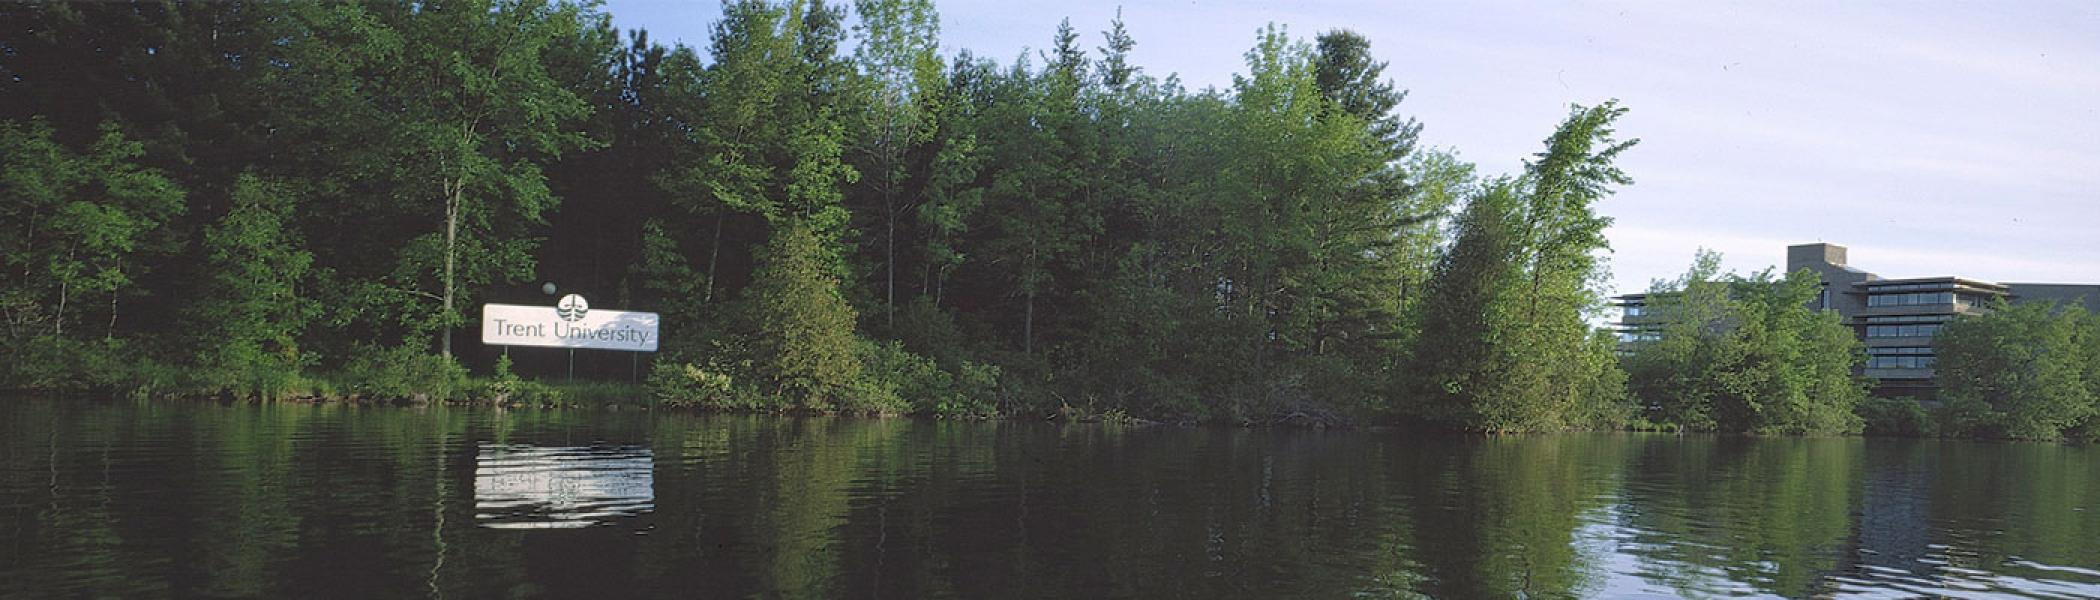 View of sign from across the river, text says Trent University